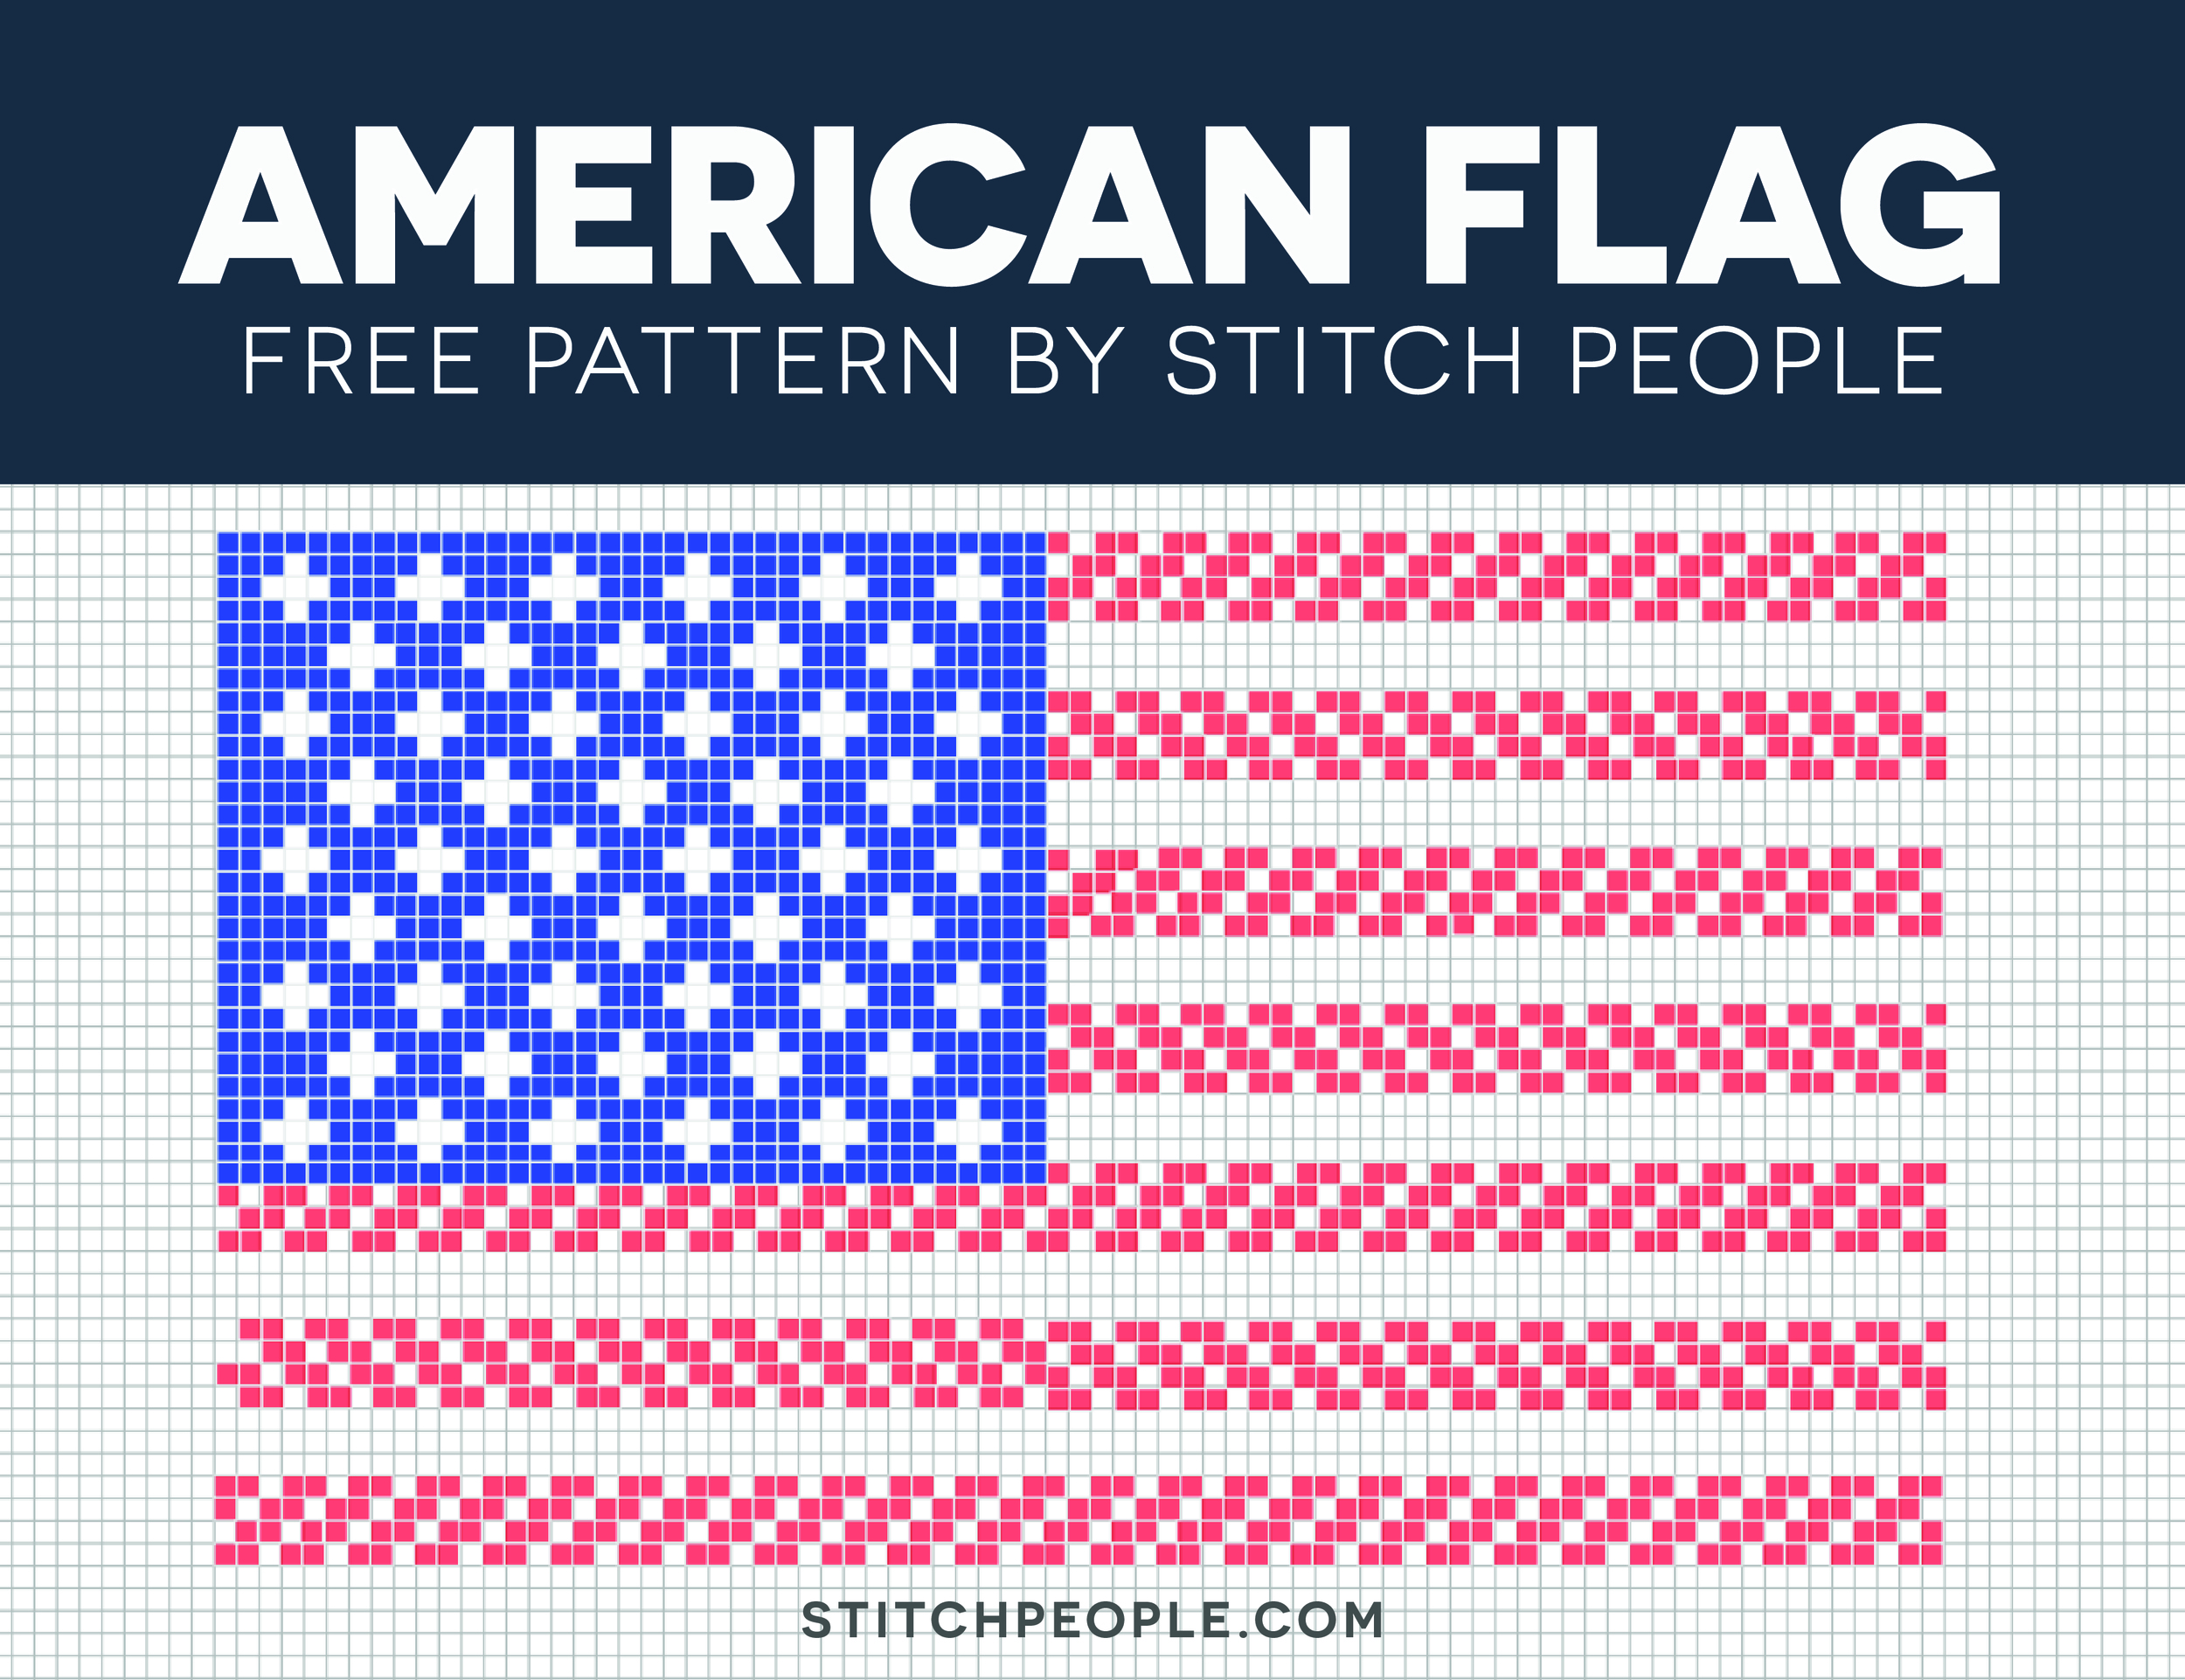 AmericanFlagStitchPeople-01